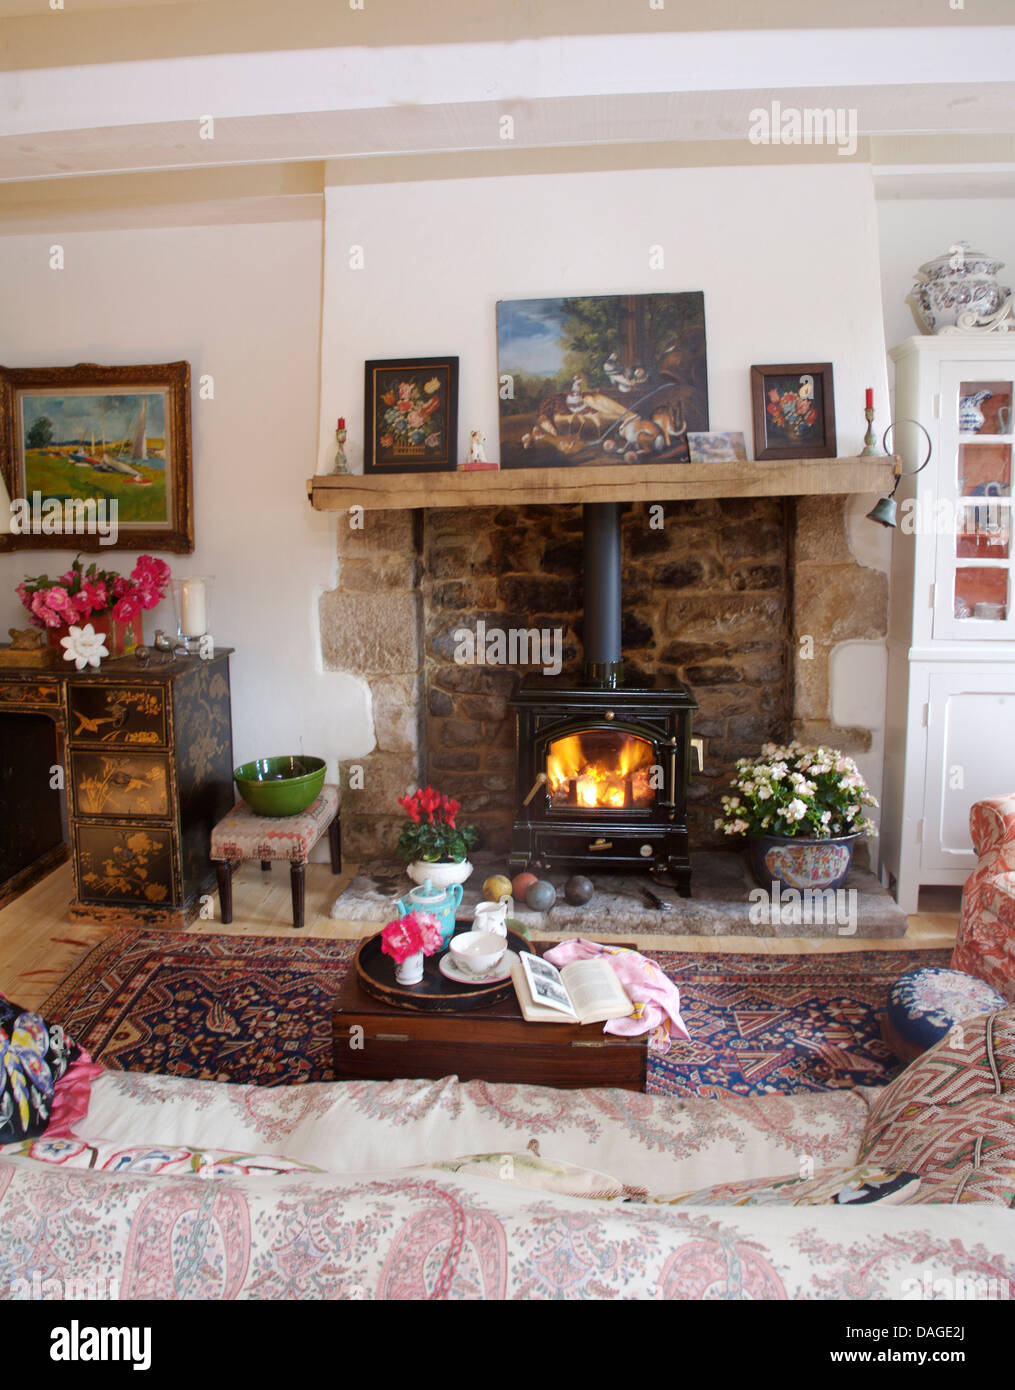 pictures on wooden mantelpiece above fireplace with lit wood